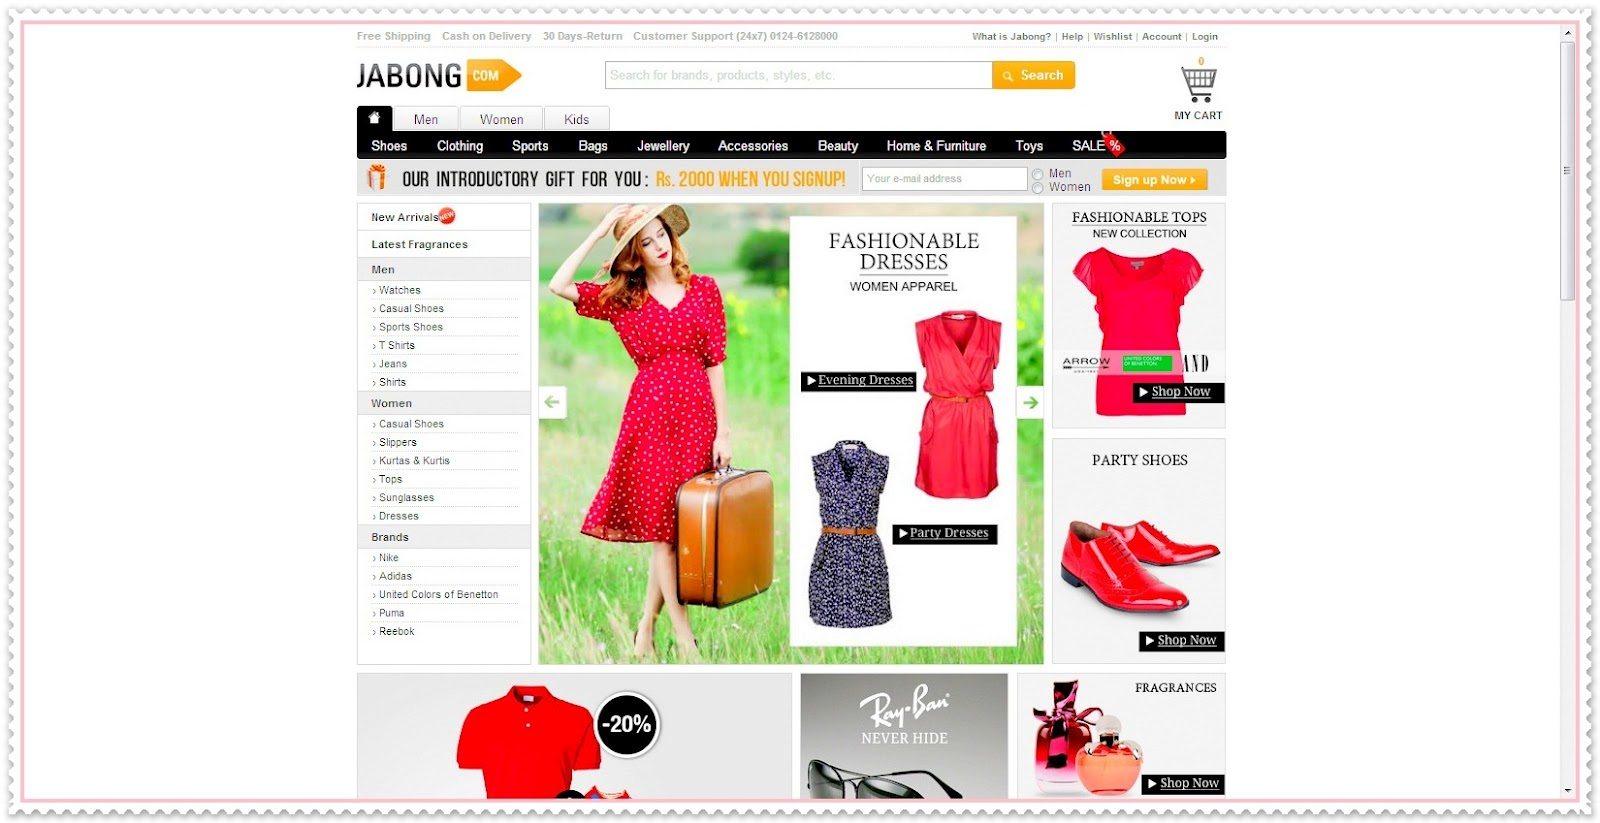 6429717e7 My shopping experience with Jabong.com